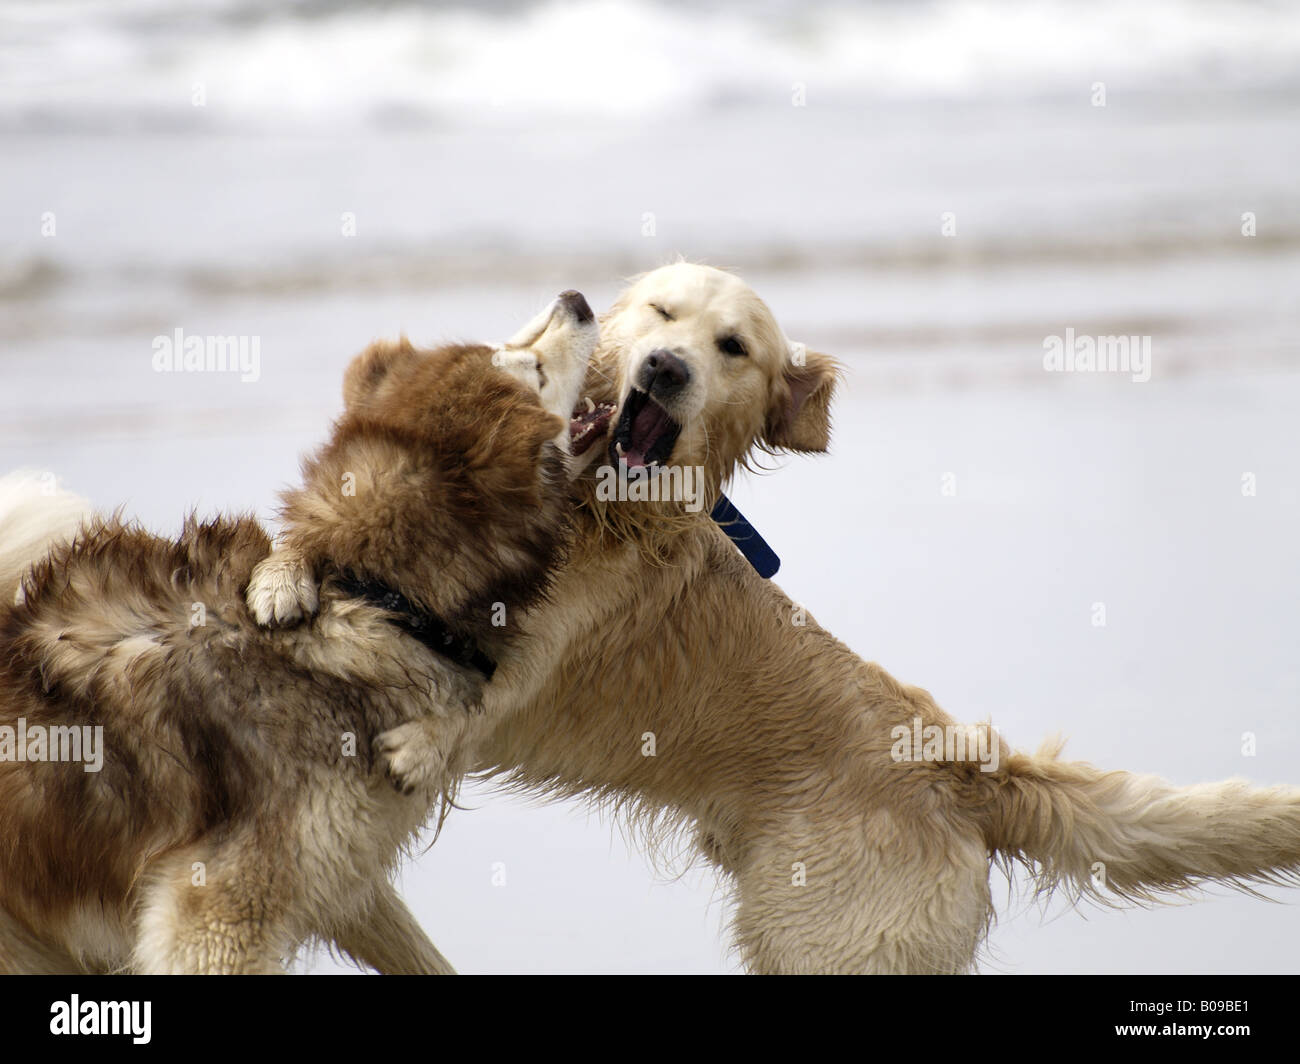 Two dogs fighting - Stock Image